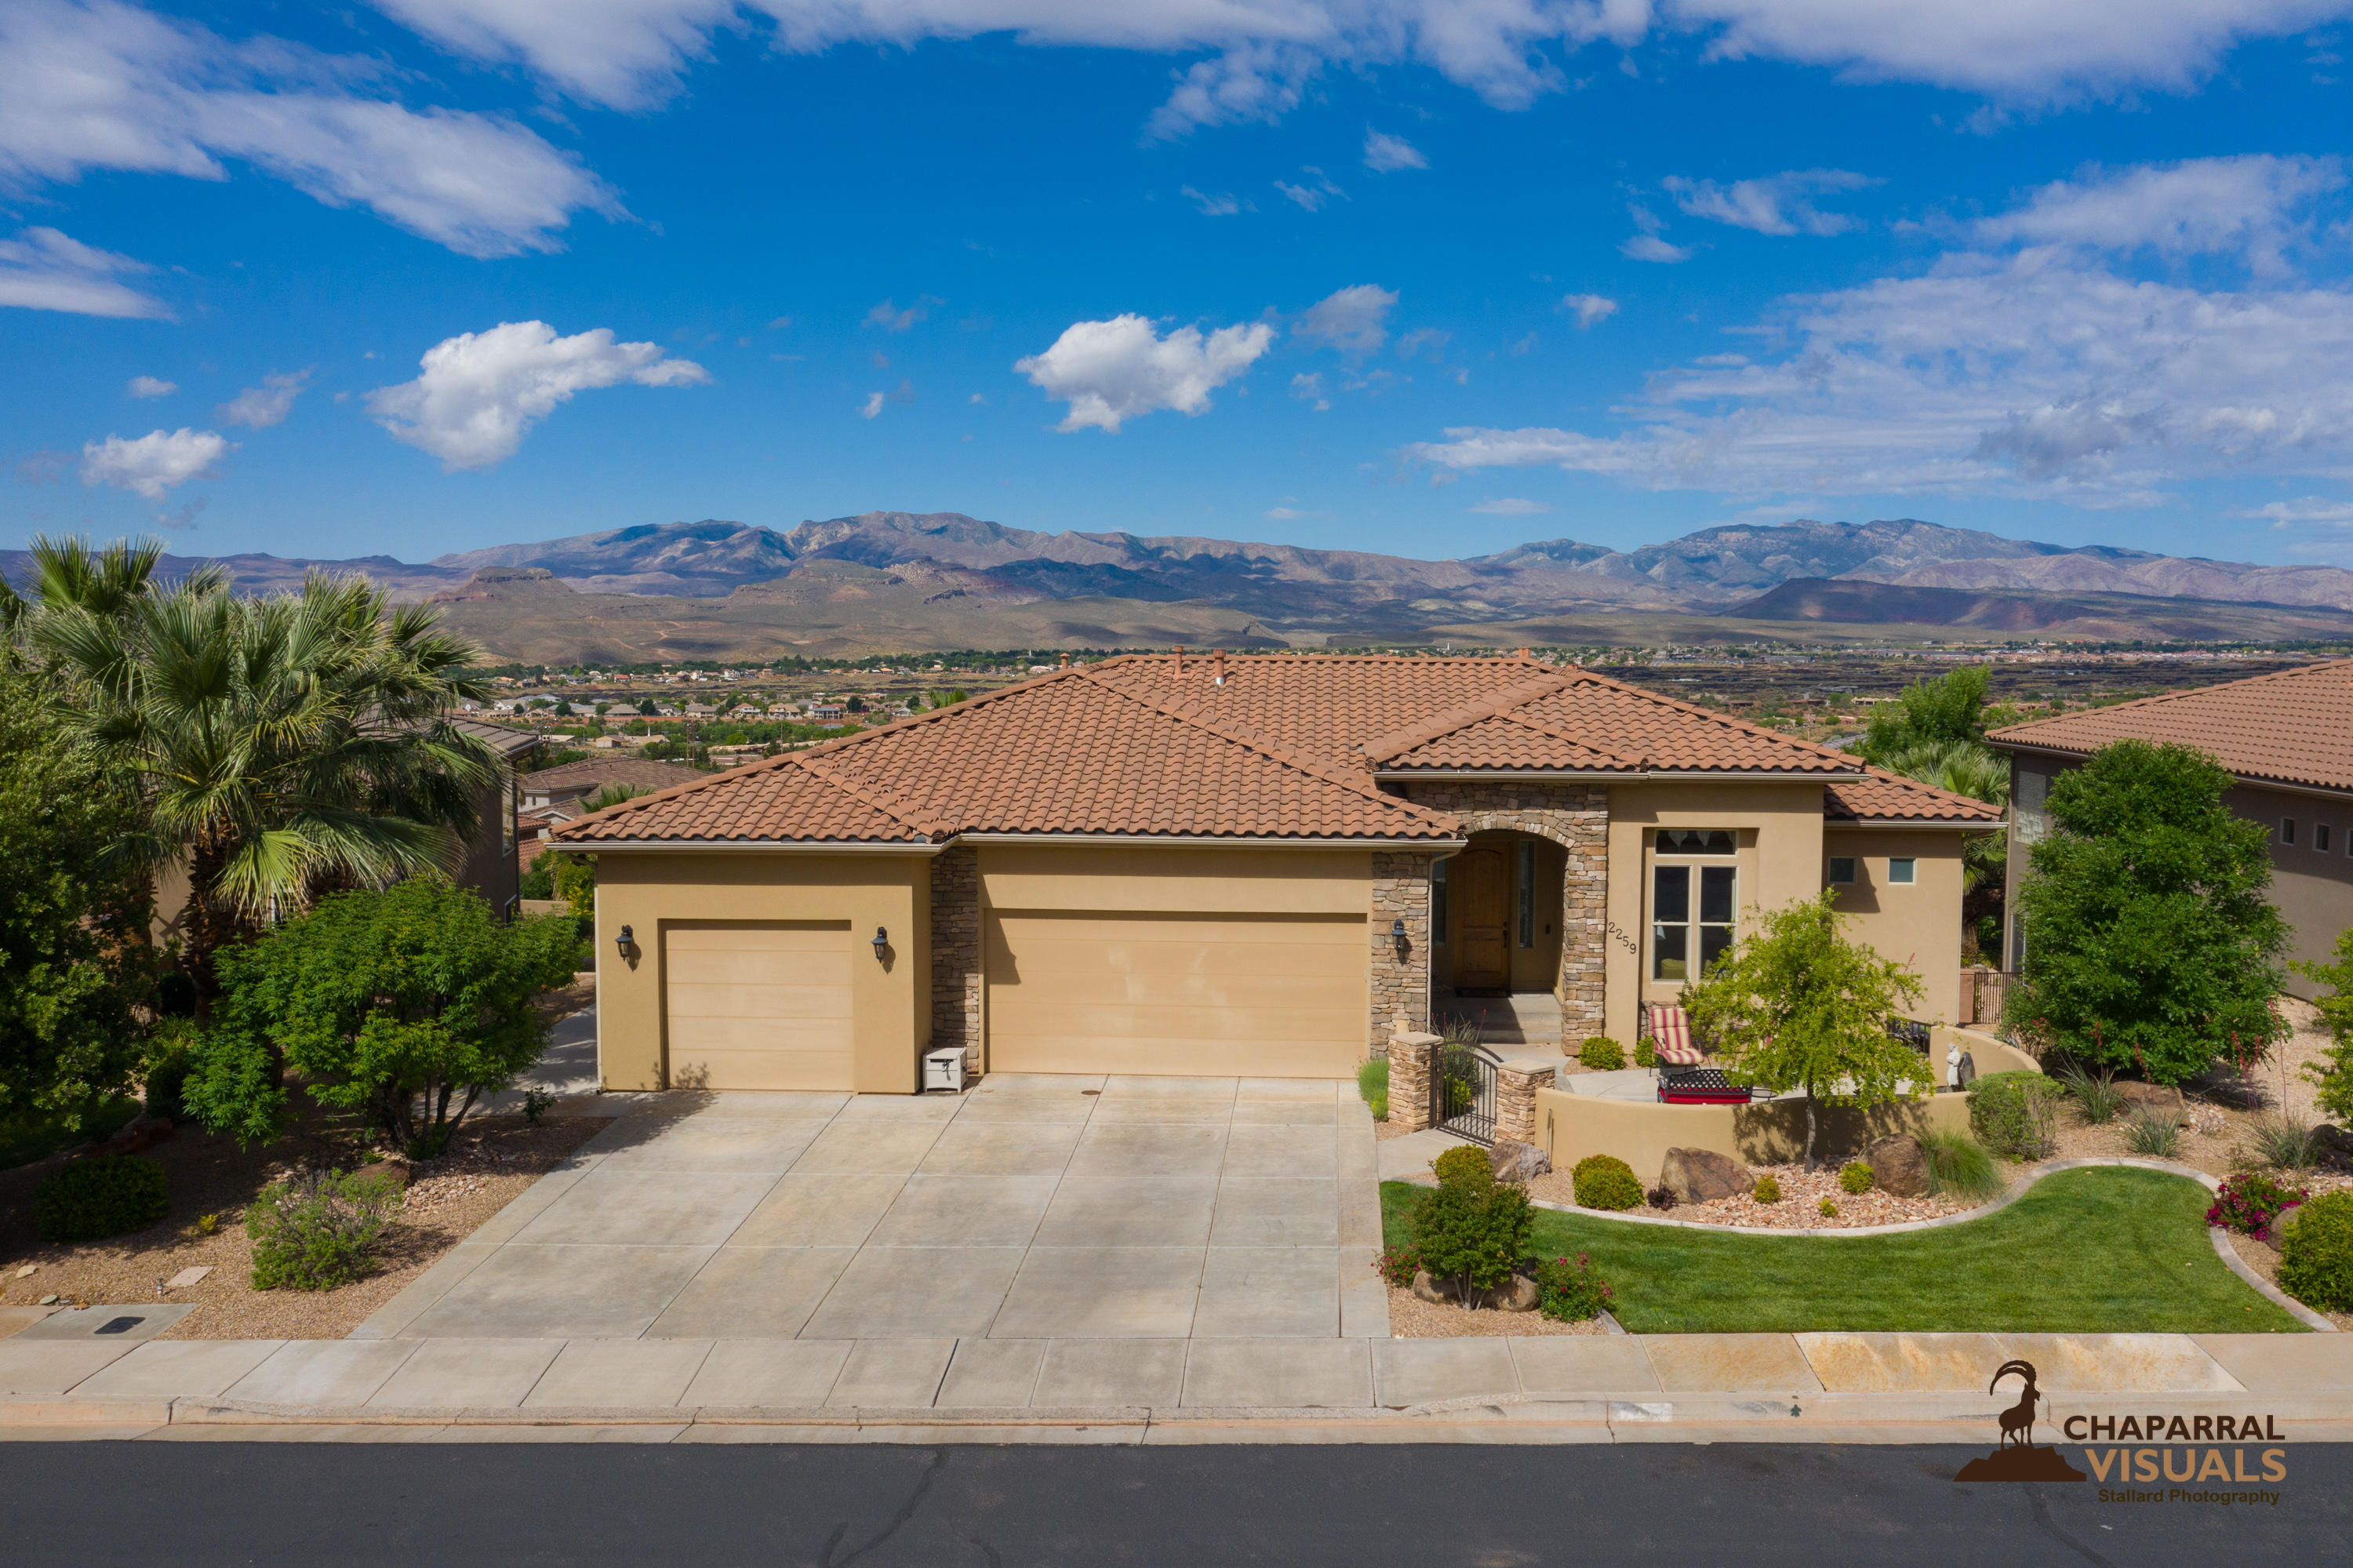 2259 N Cascade Canyon Dr, St George Ut 84770